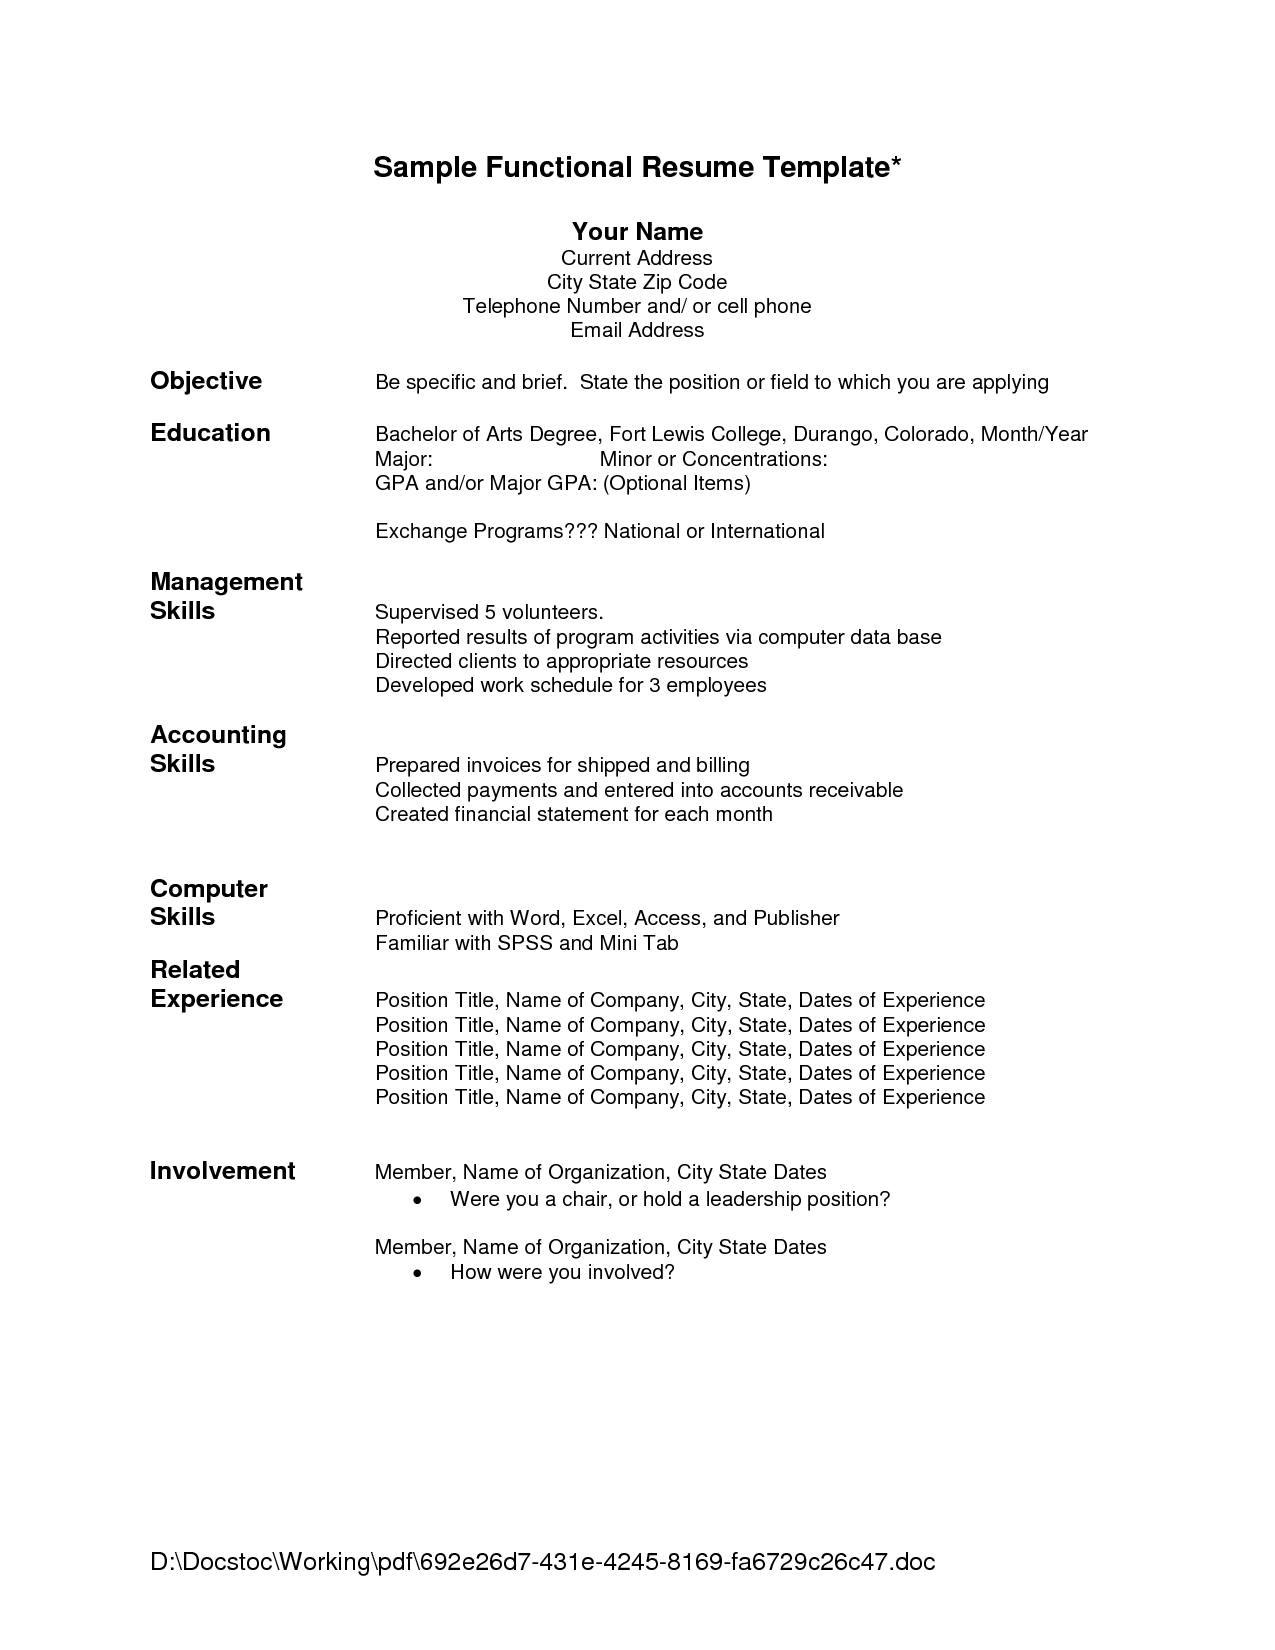 Current Resume Templates Sample One Page Functional Resume  Google Search  Resumes